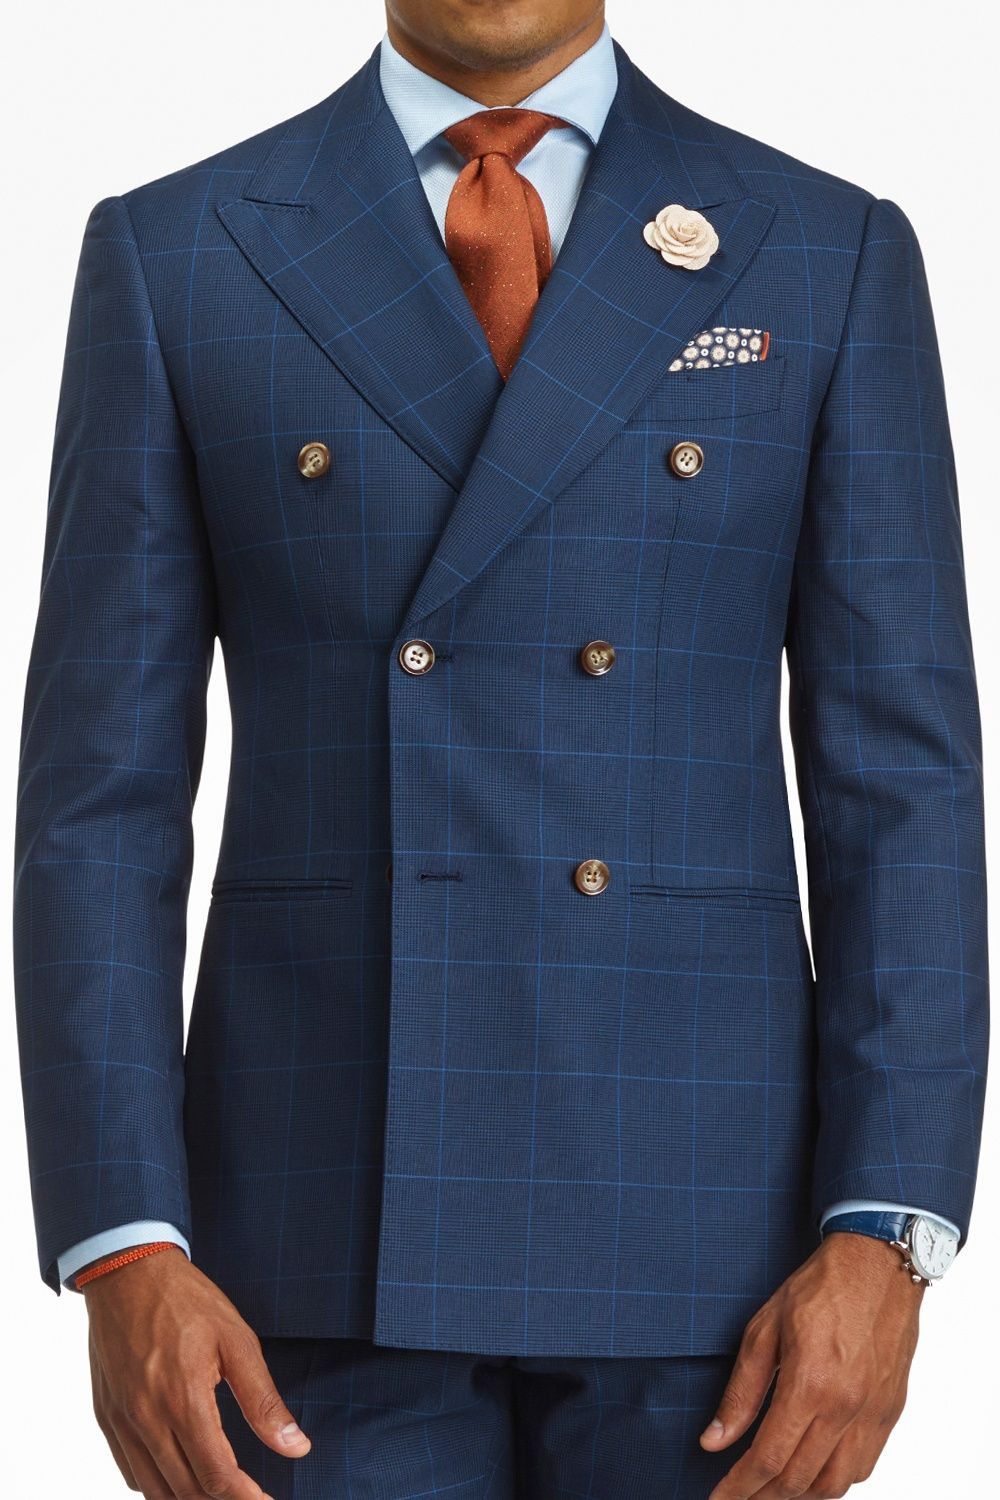 552b144fd5b34 Agani - Blue Windowpane Double Breasted Suit - Suits - Main - Shop